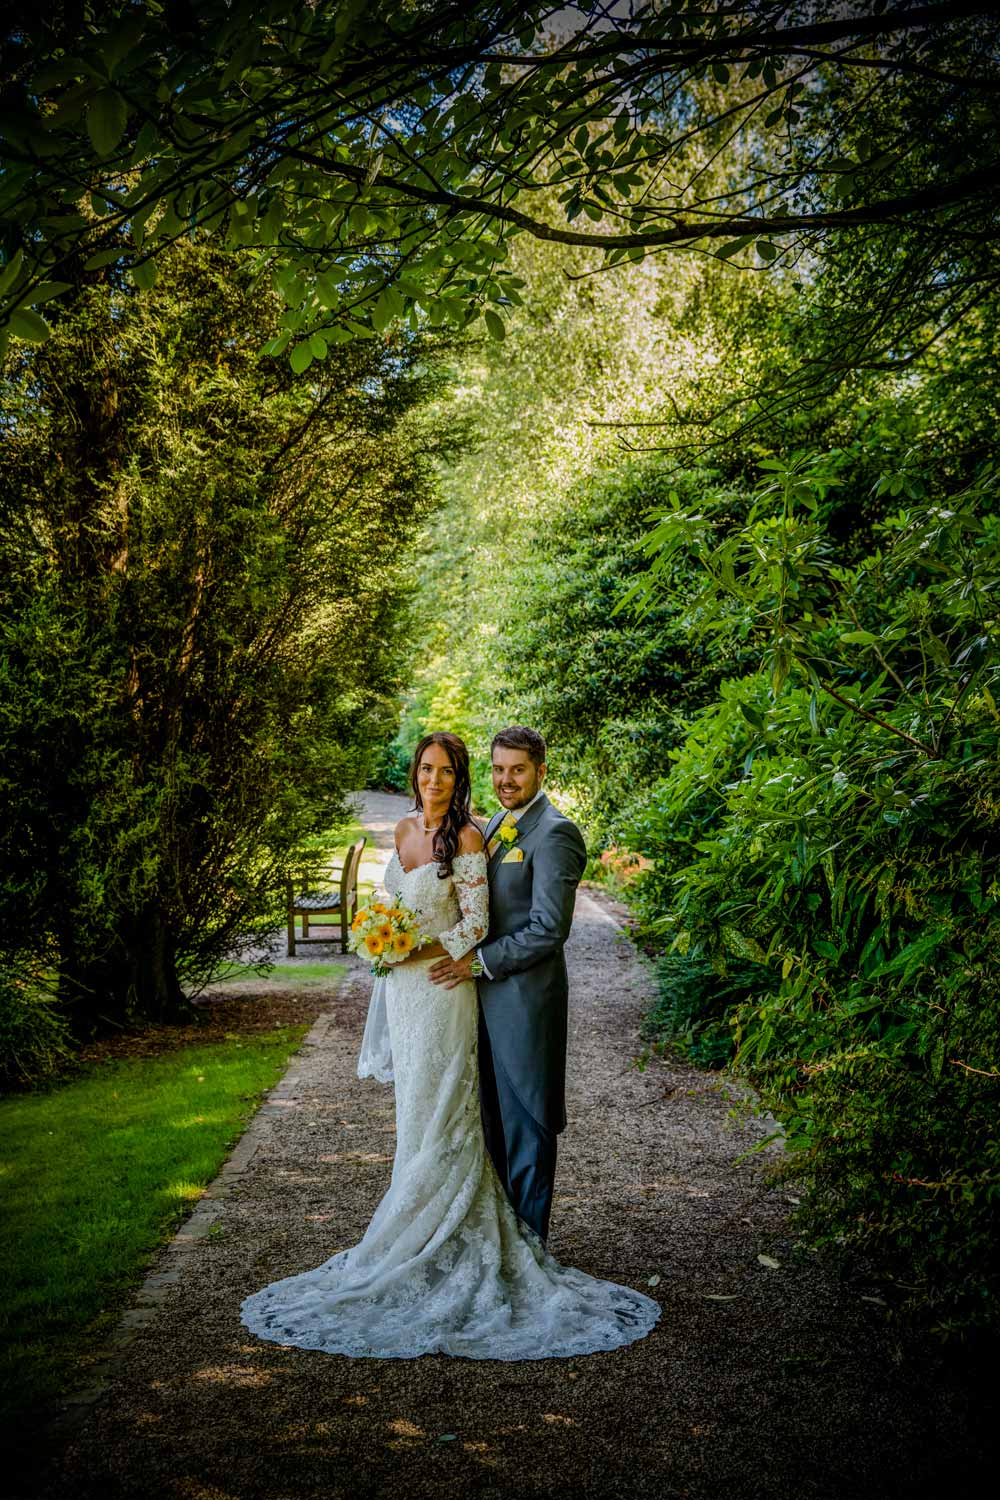 Wedding photoshoot in Cheshire